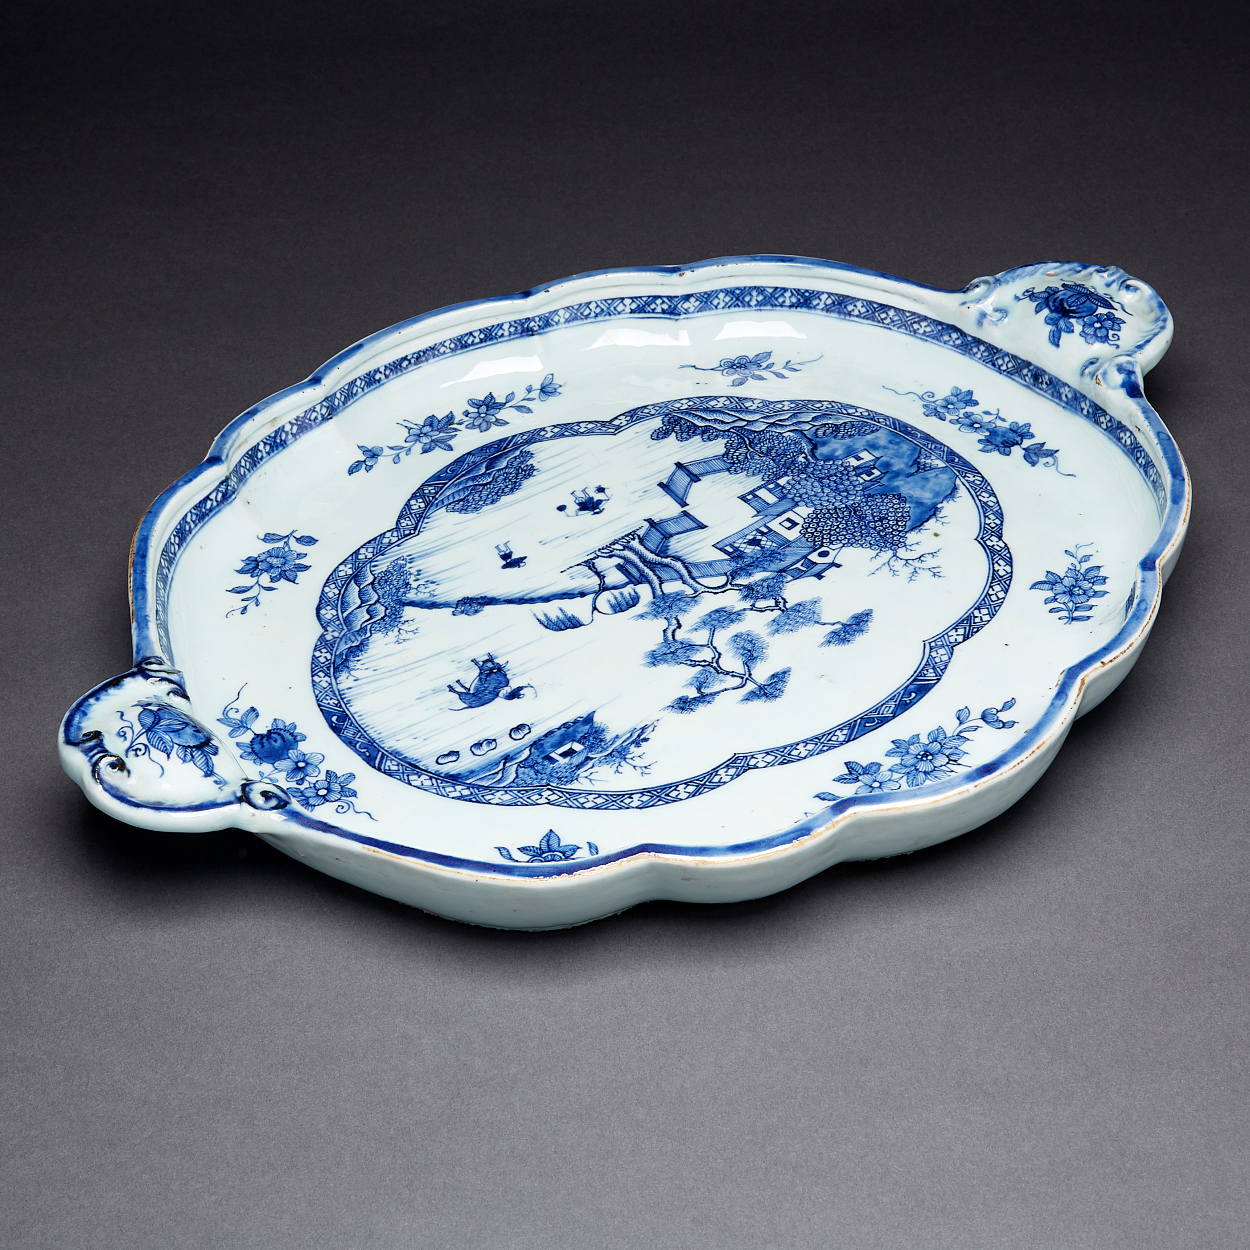 A Blue and White Lobed Oval Tray